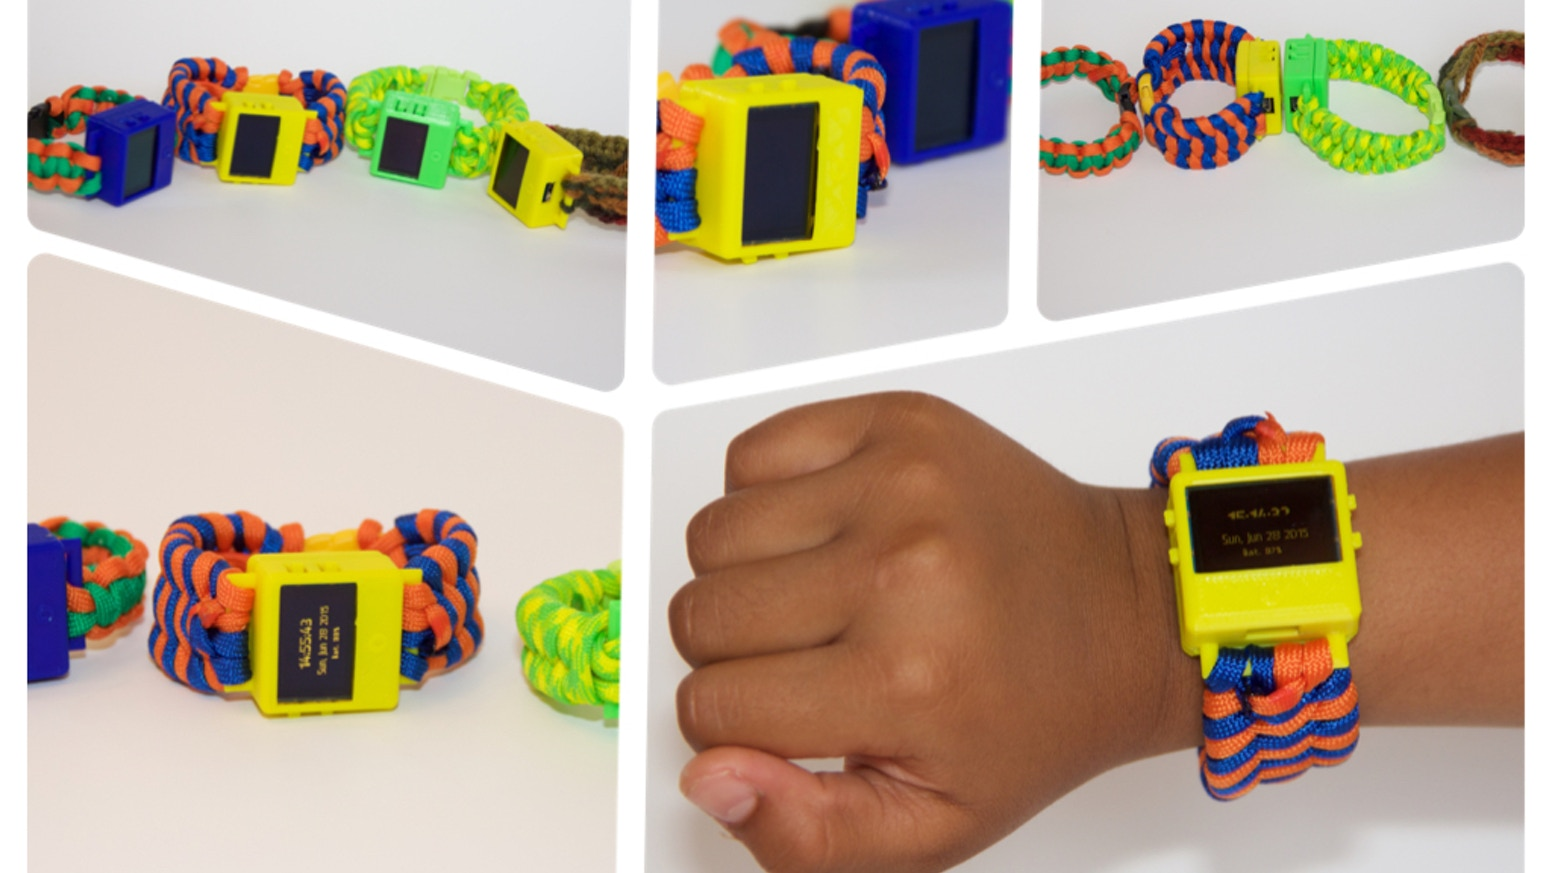 O Watch is a perfect smartwatch kit for kids to learn programming, 3D printing and crafts.